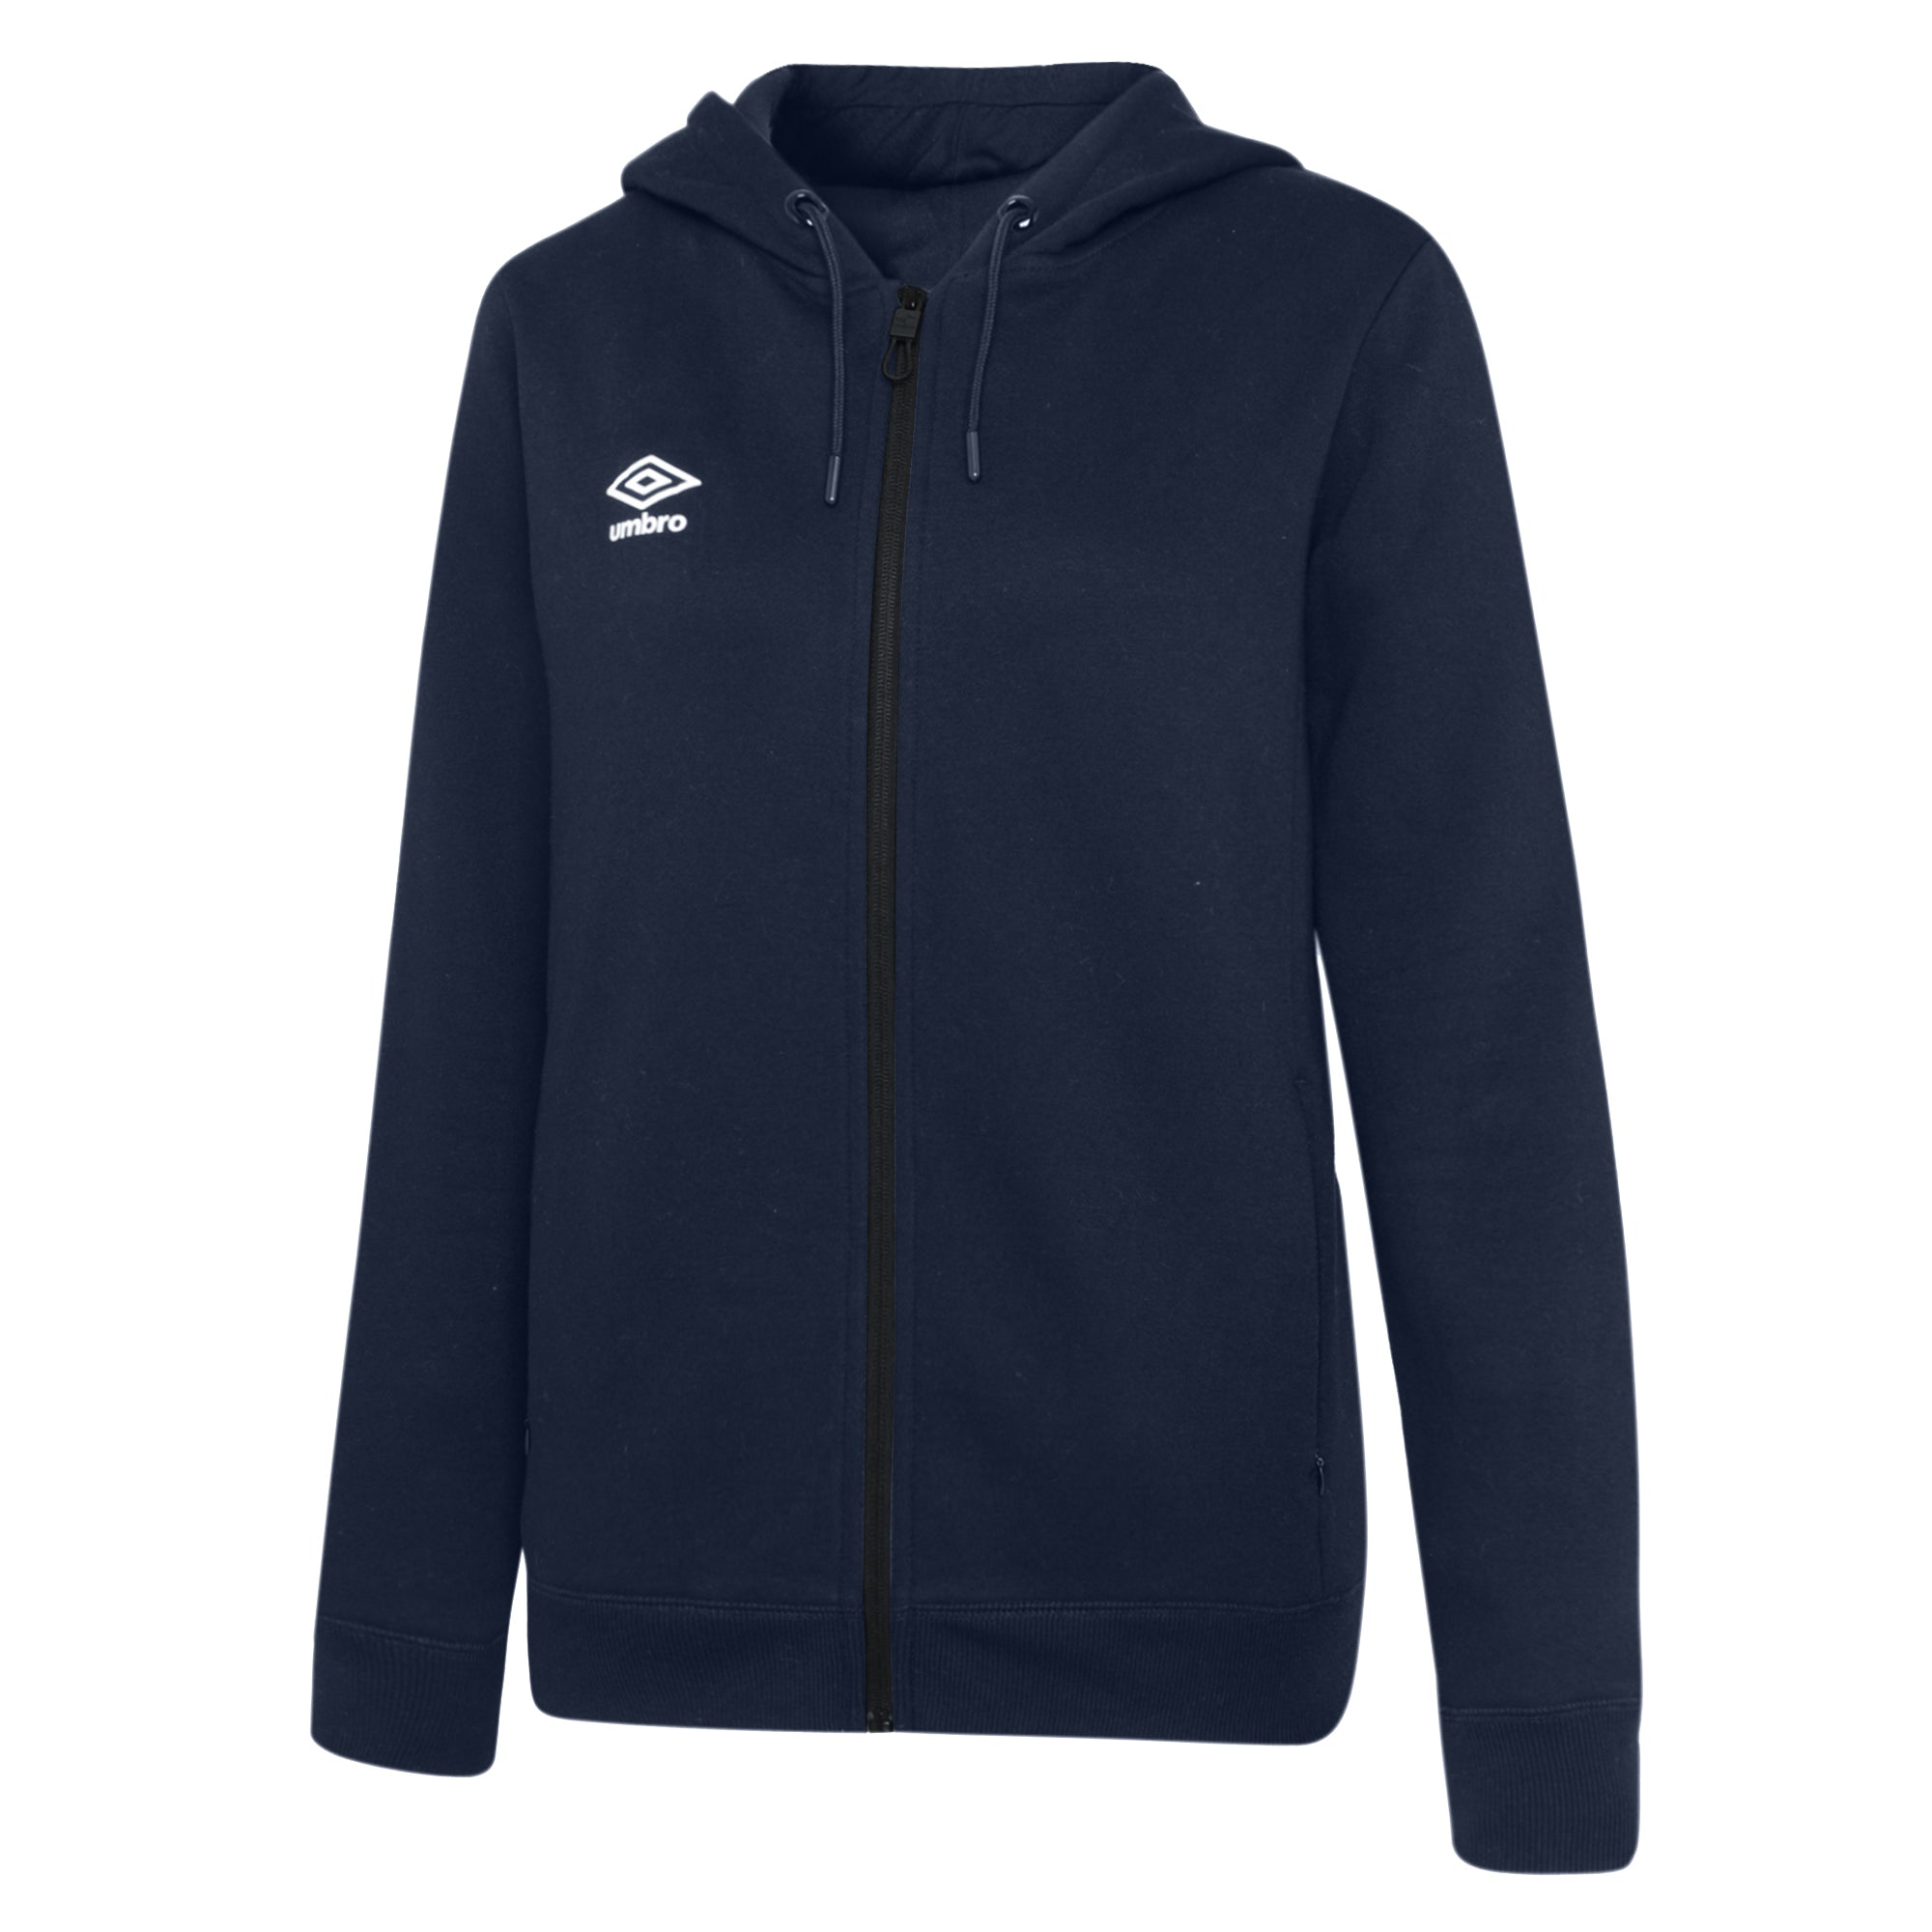 Umbro Club Leisure Women's Zipped Hoody - TW Navy/White